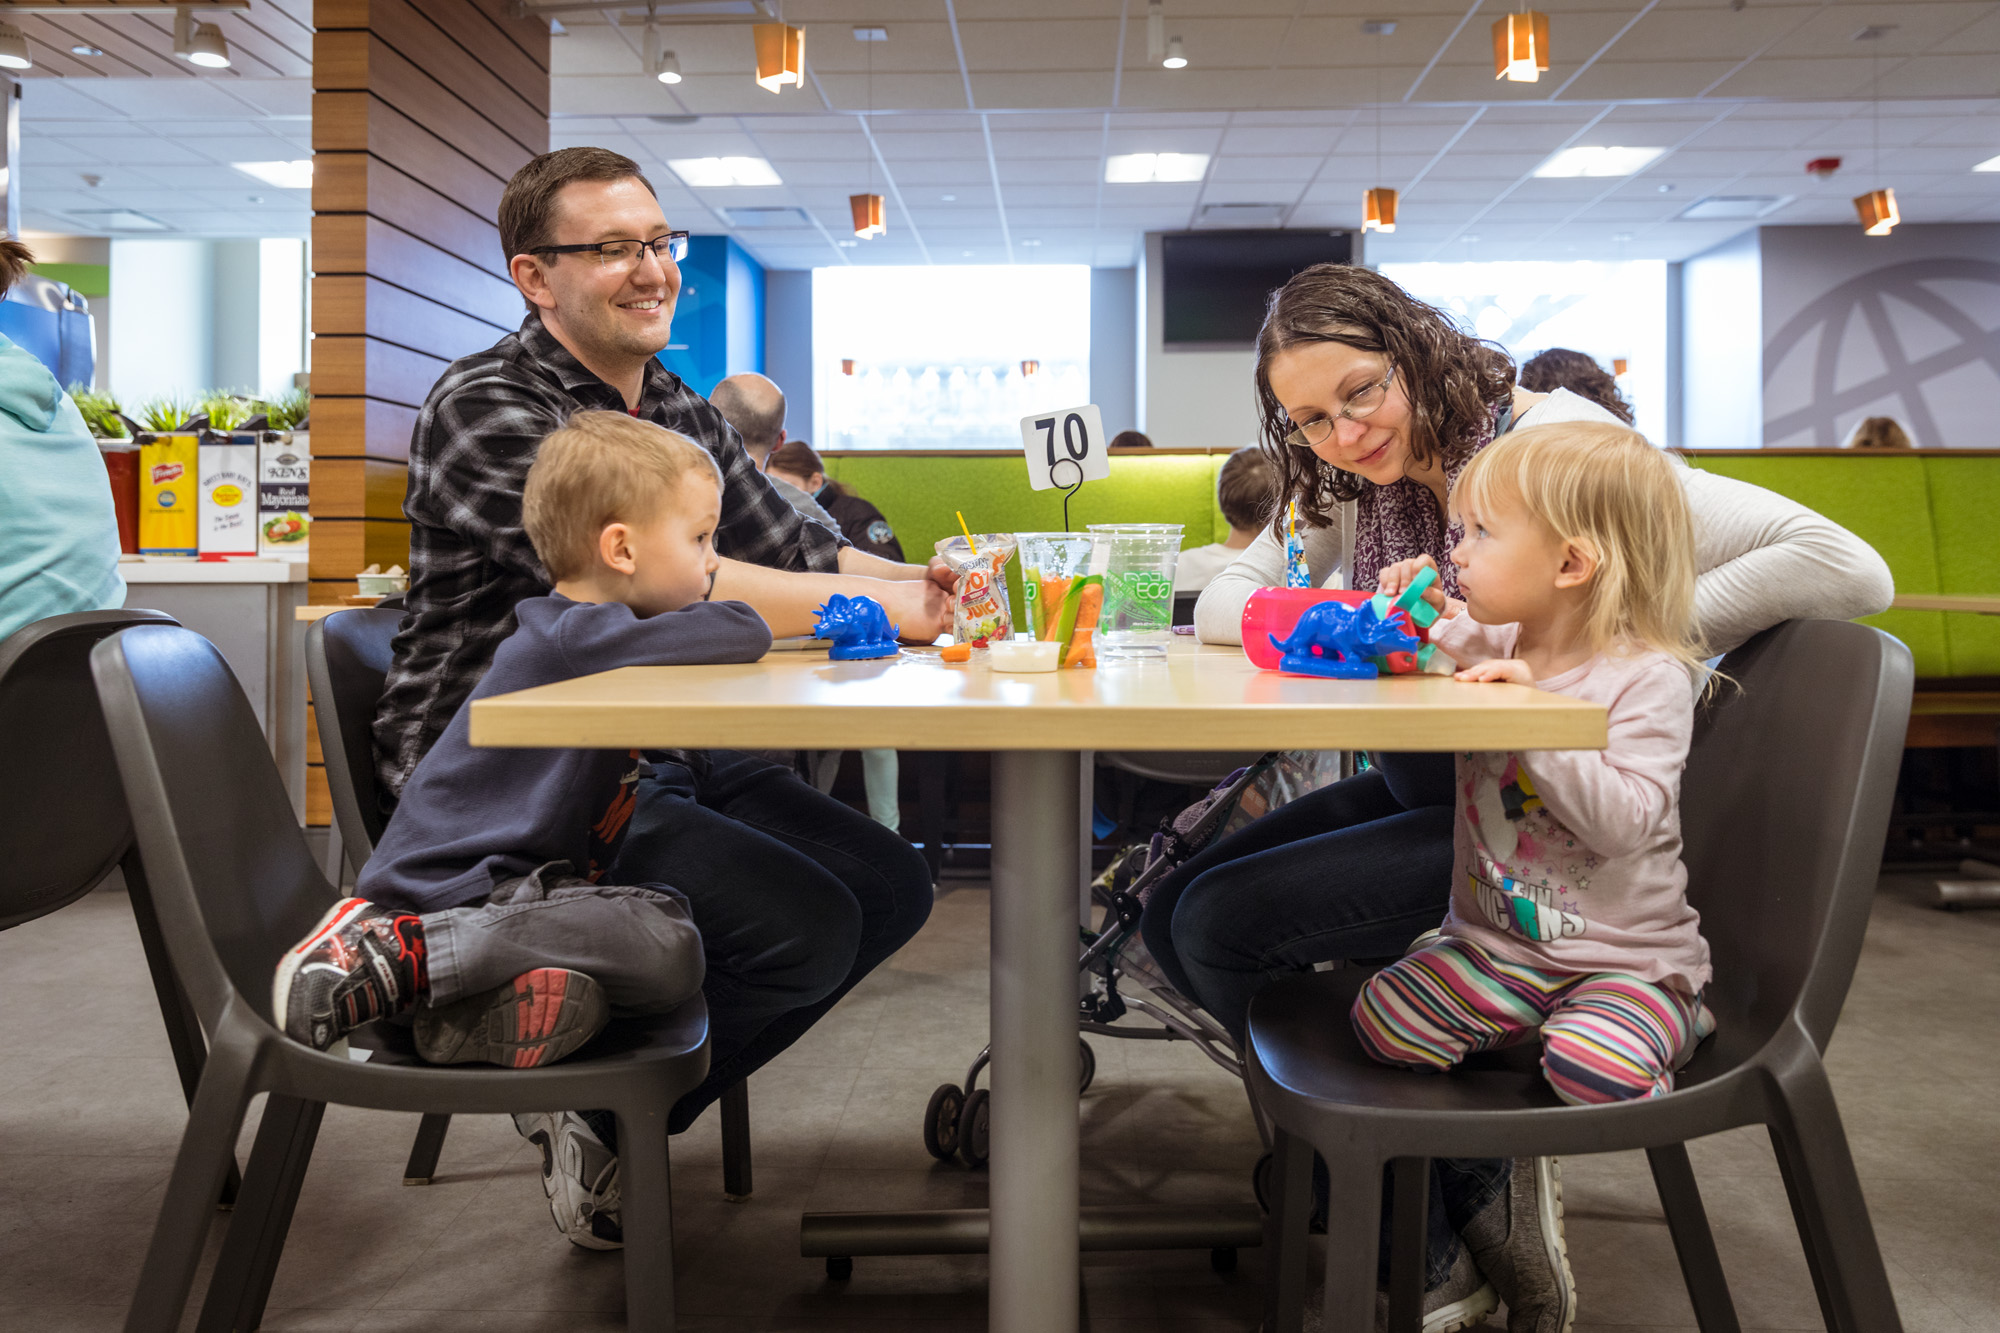 A family of four sits at a table in the Explorer Cafe. Parents smile and look on as a young boy and girl share a cup of vegetables and juice. Two blue plastic triceratops are also on the table.